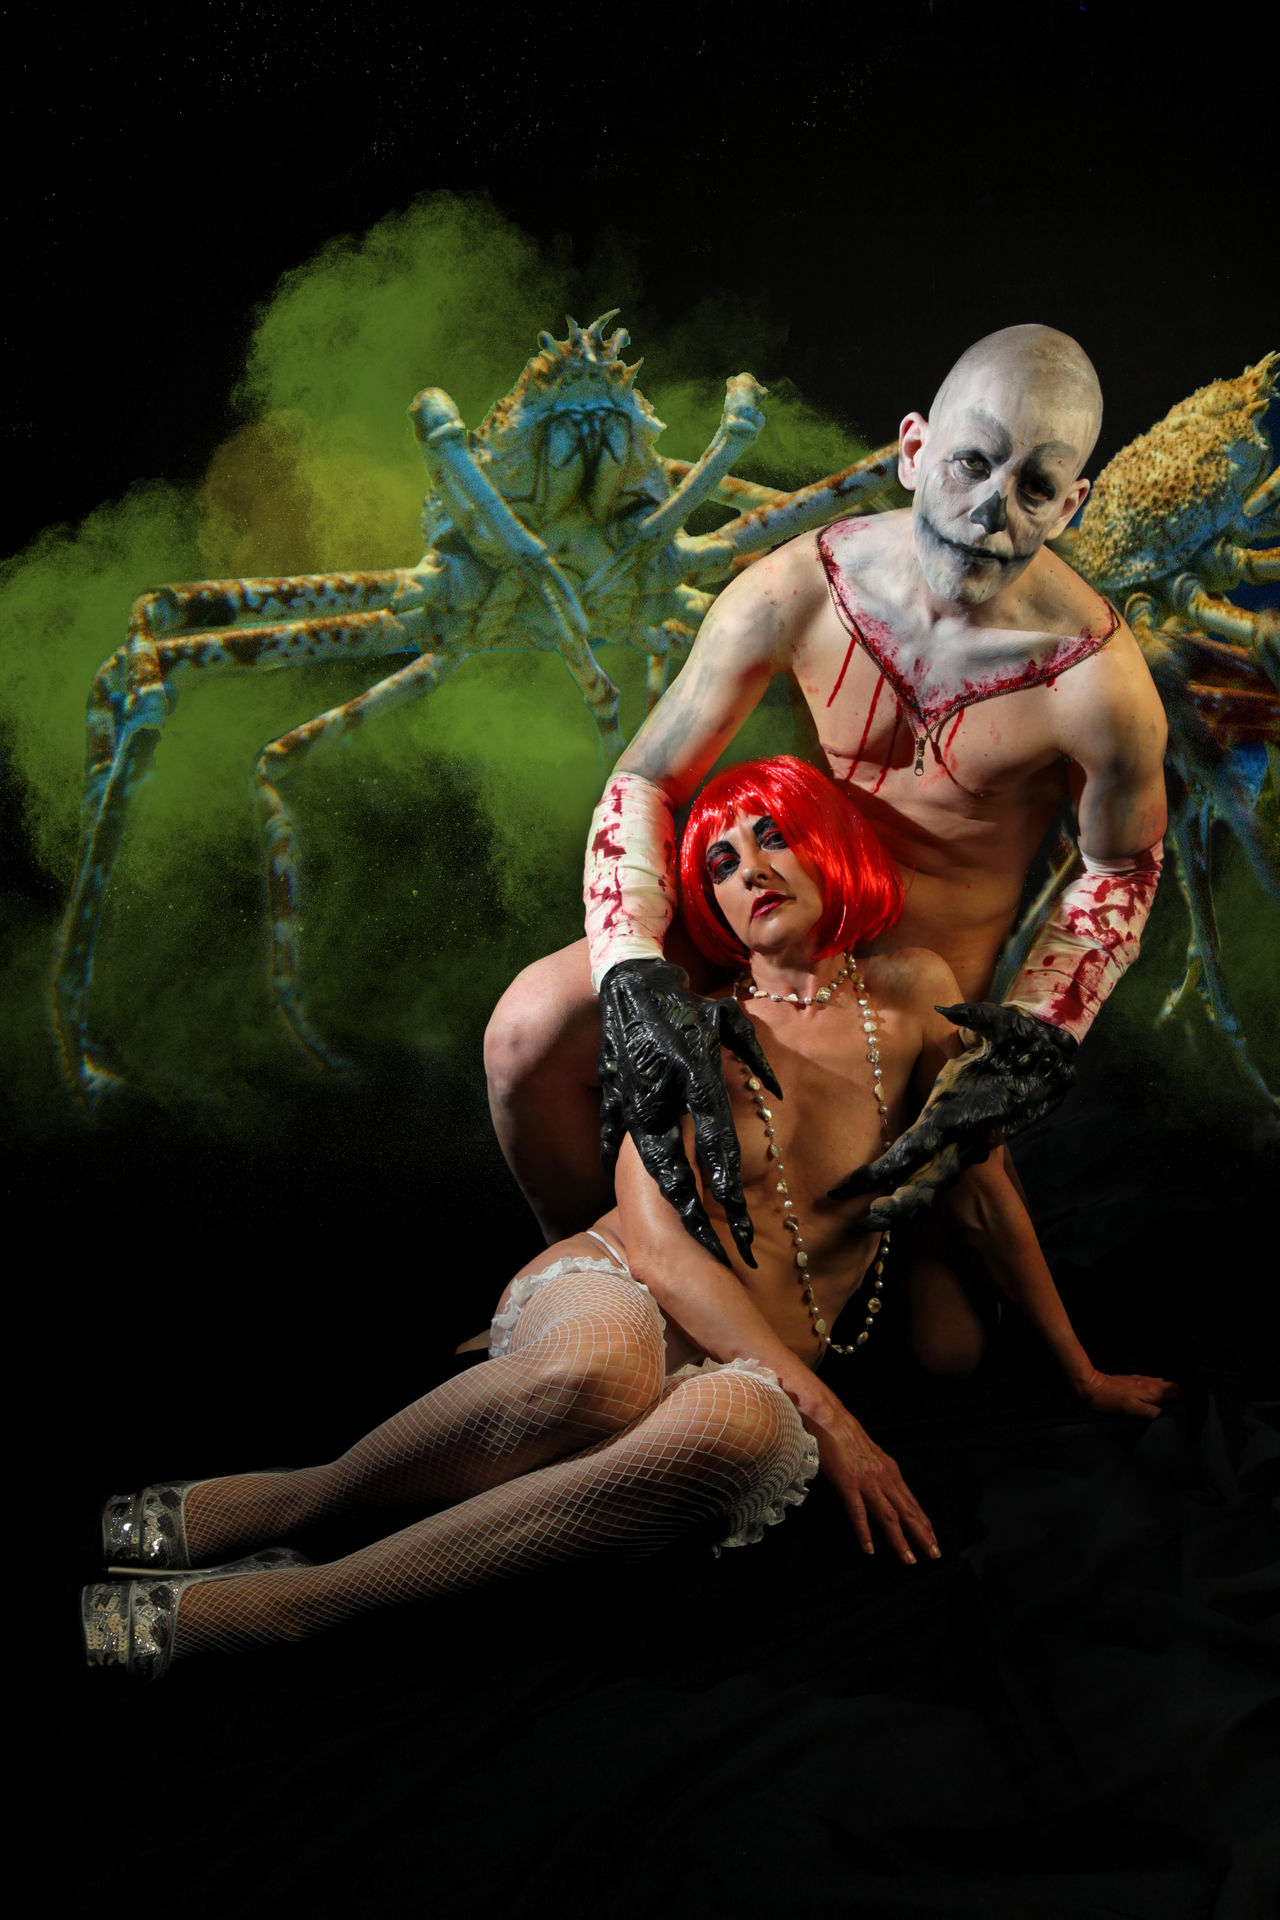 Blood Bodypainting Monster Crab Halloween Demon Monster Scary Studio Shoot Good And Evil Good And Bad